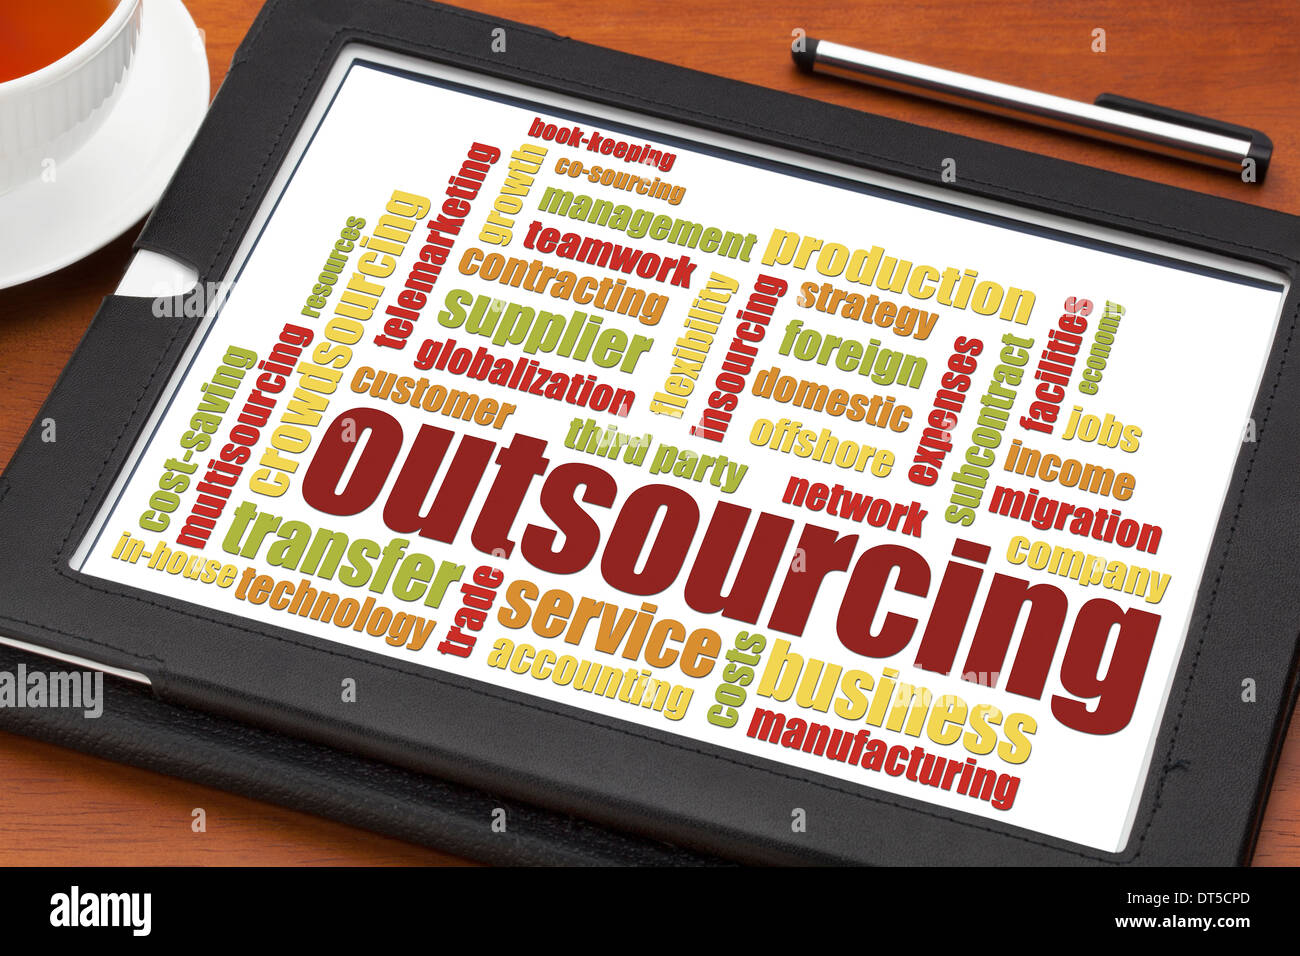 outsourcing word cloud on a digital tablet with a cup of tea - Stock Image